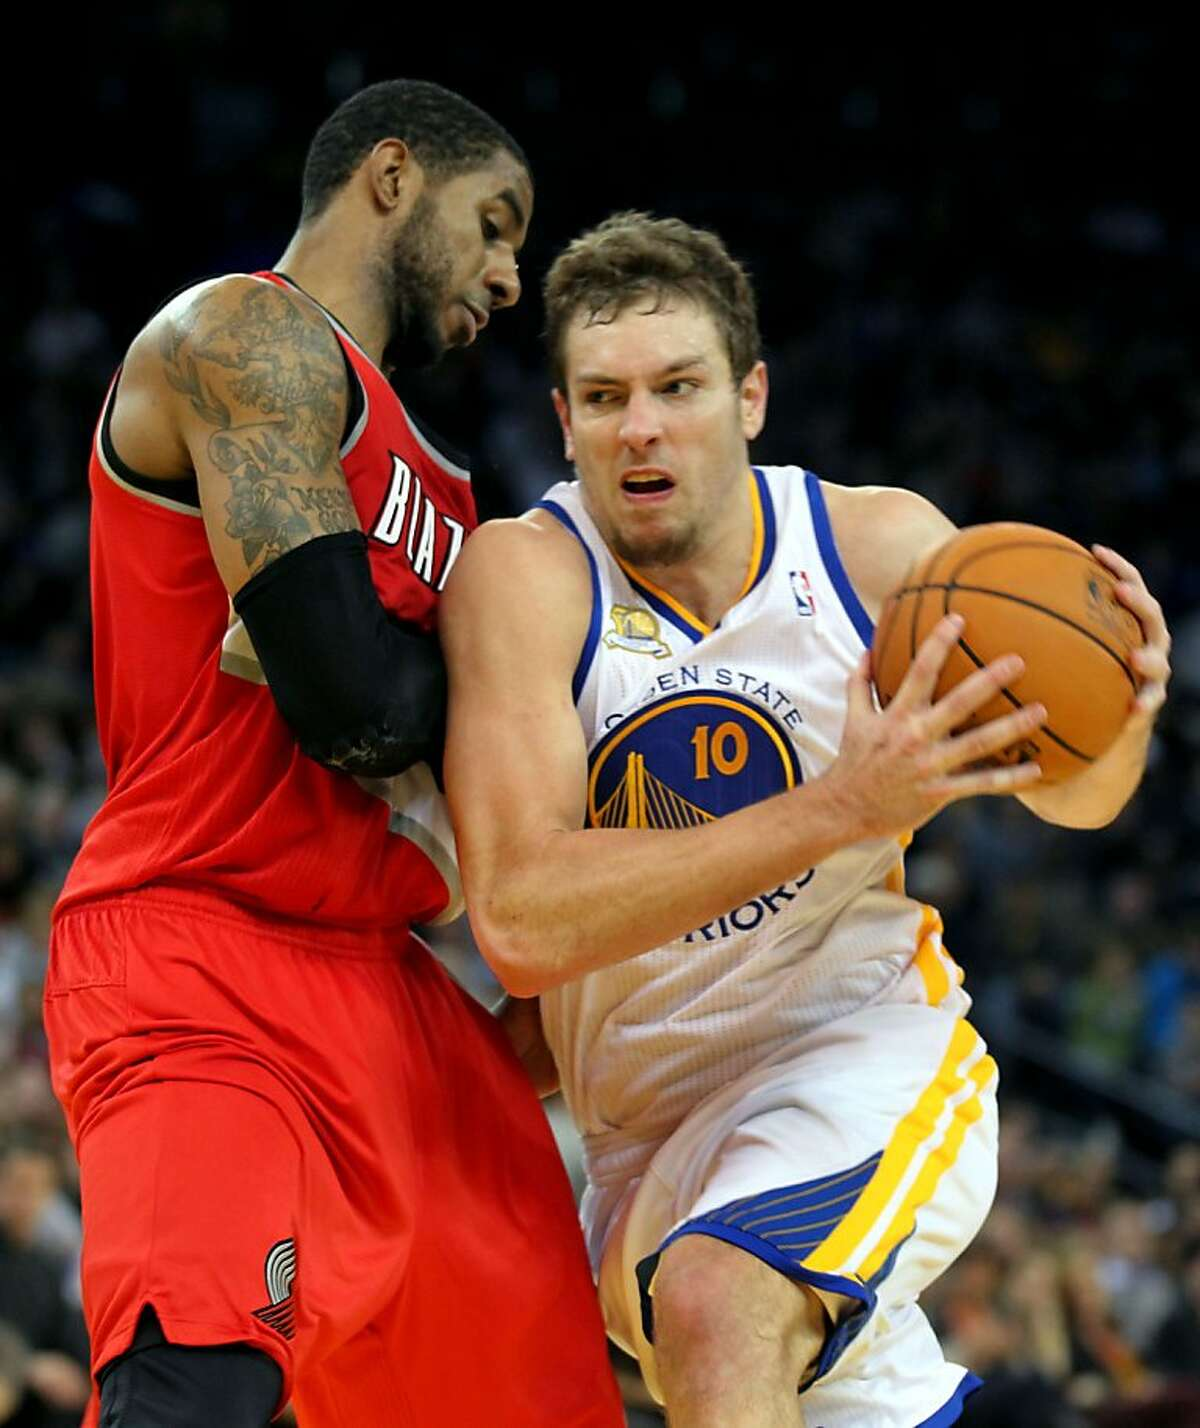 Golden State Warriors' Davis Lee (10) drives against Portland Trail Blazers Lamarcus Aldridge (12) during the second half of their NBA basketball game in Oakland, Calif., Wednesday, January 25, 2012.